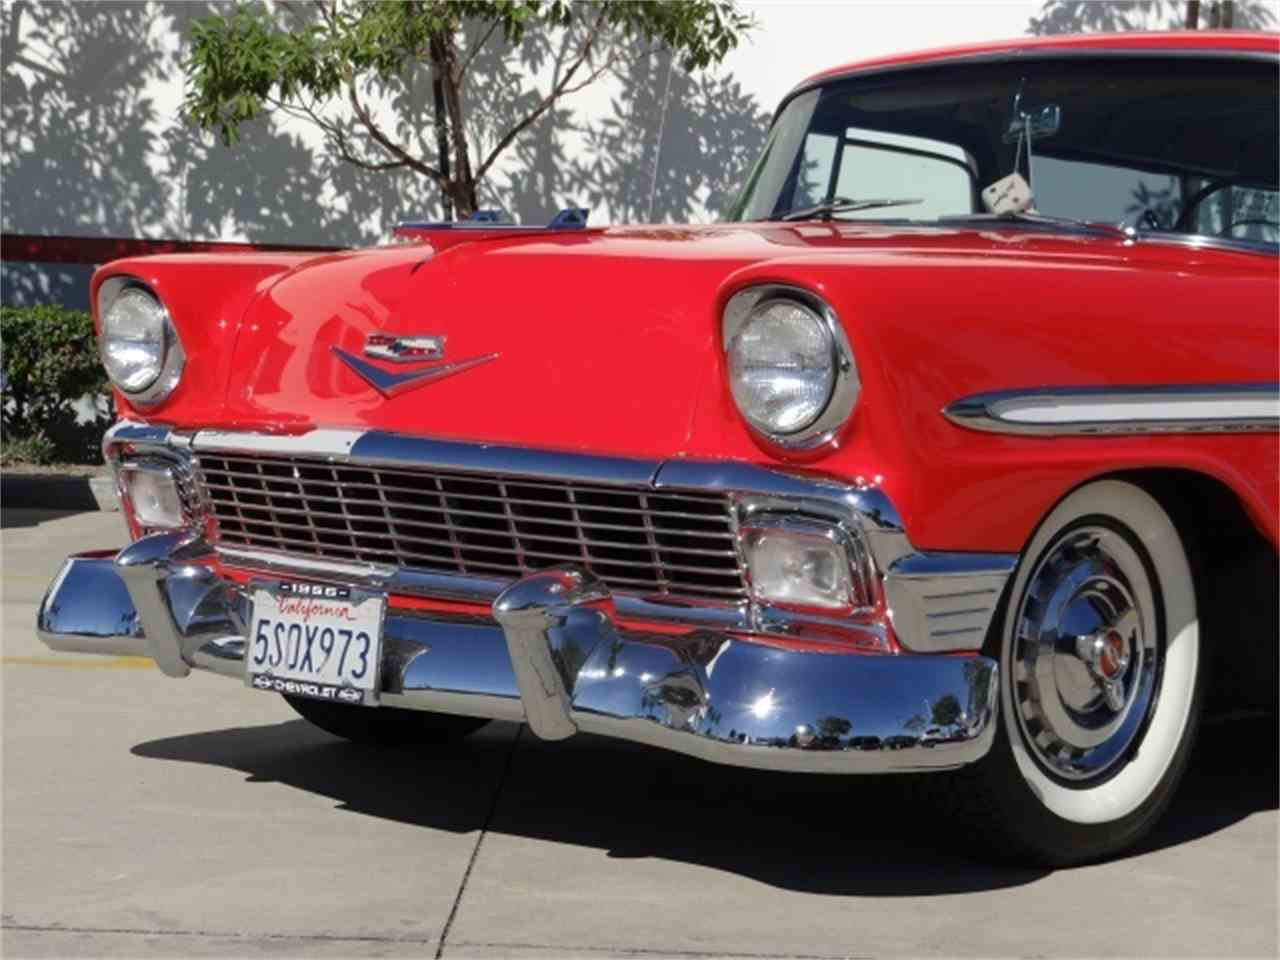 1956 chevrolet bel air for sale on classiccars com 74 - 1956 Chevrolet Nomad Bel Air For Sale Cc 740928